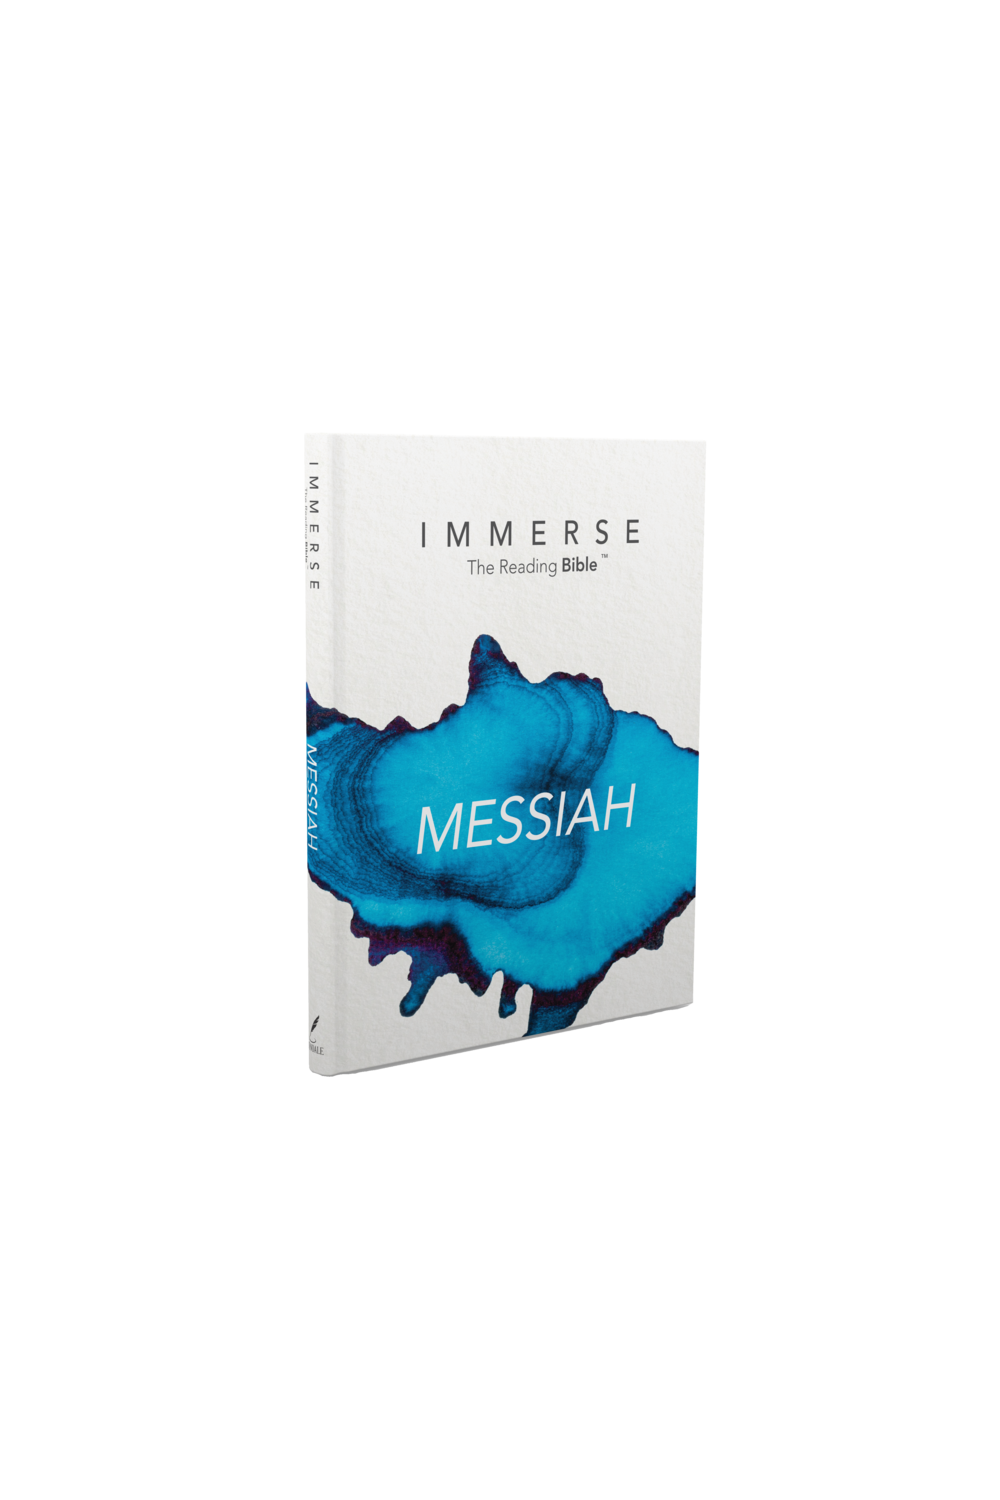 Immerse Bibles are available in the Church Office for $10.  *we do not want cost to prevent you from having this bible! If you are unable to pay just let us know!